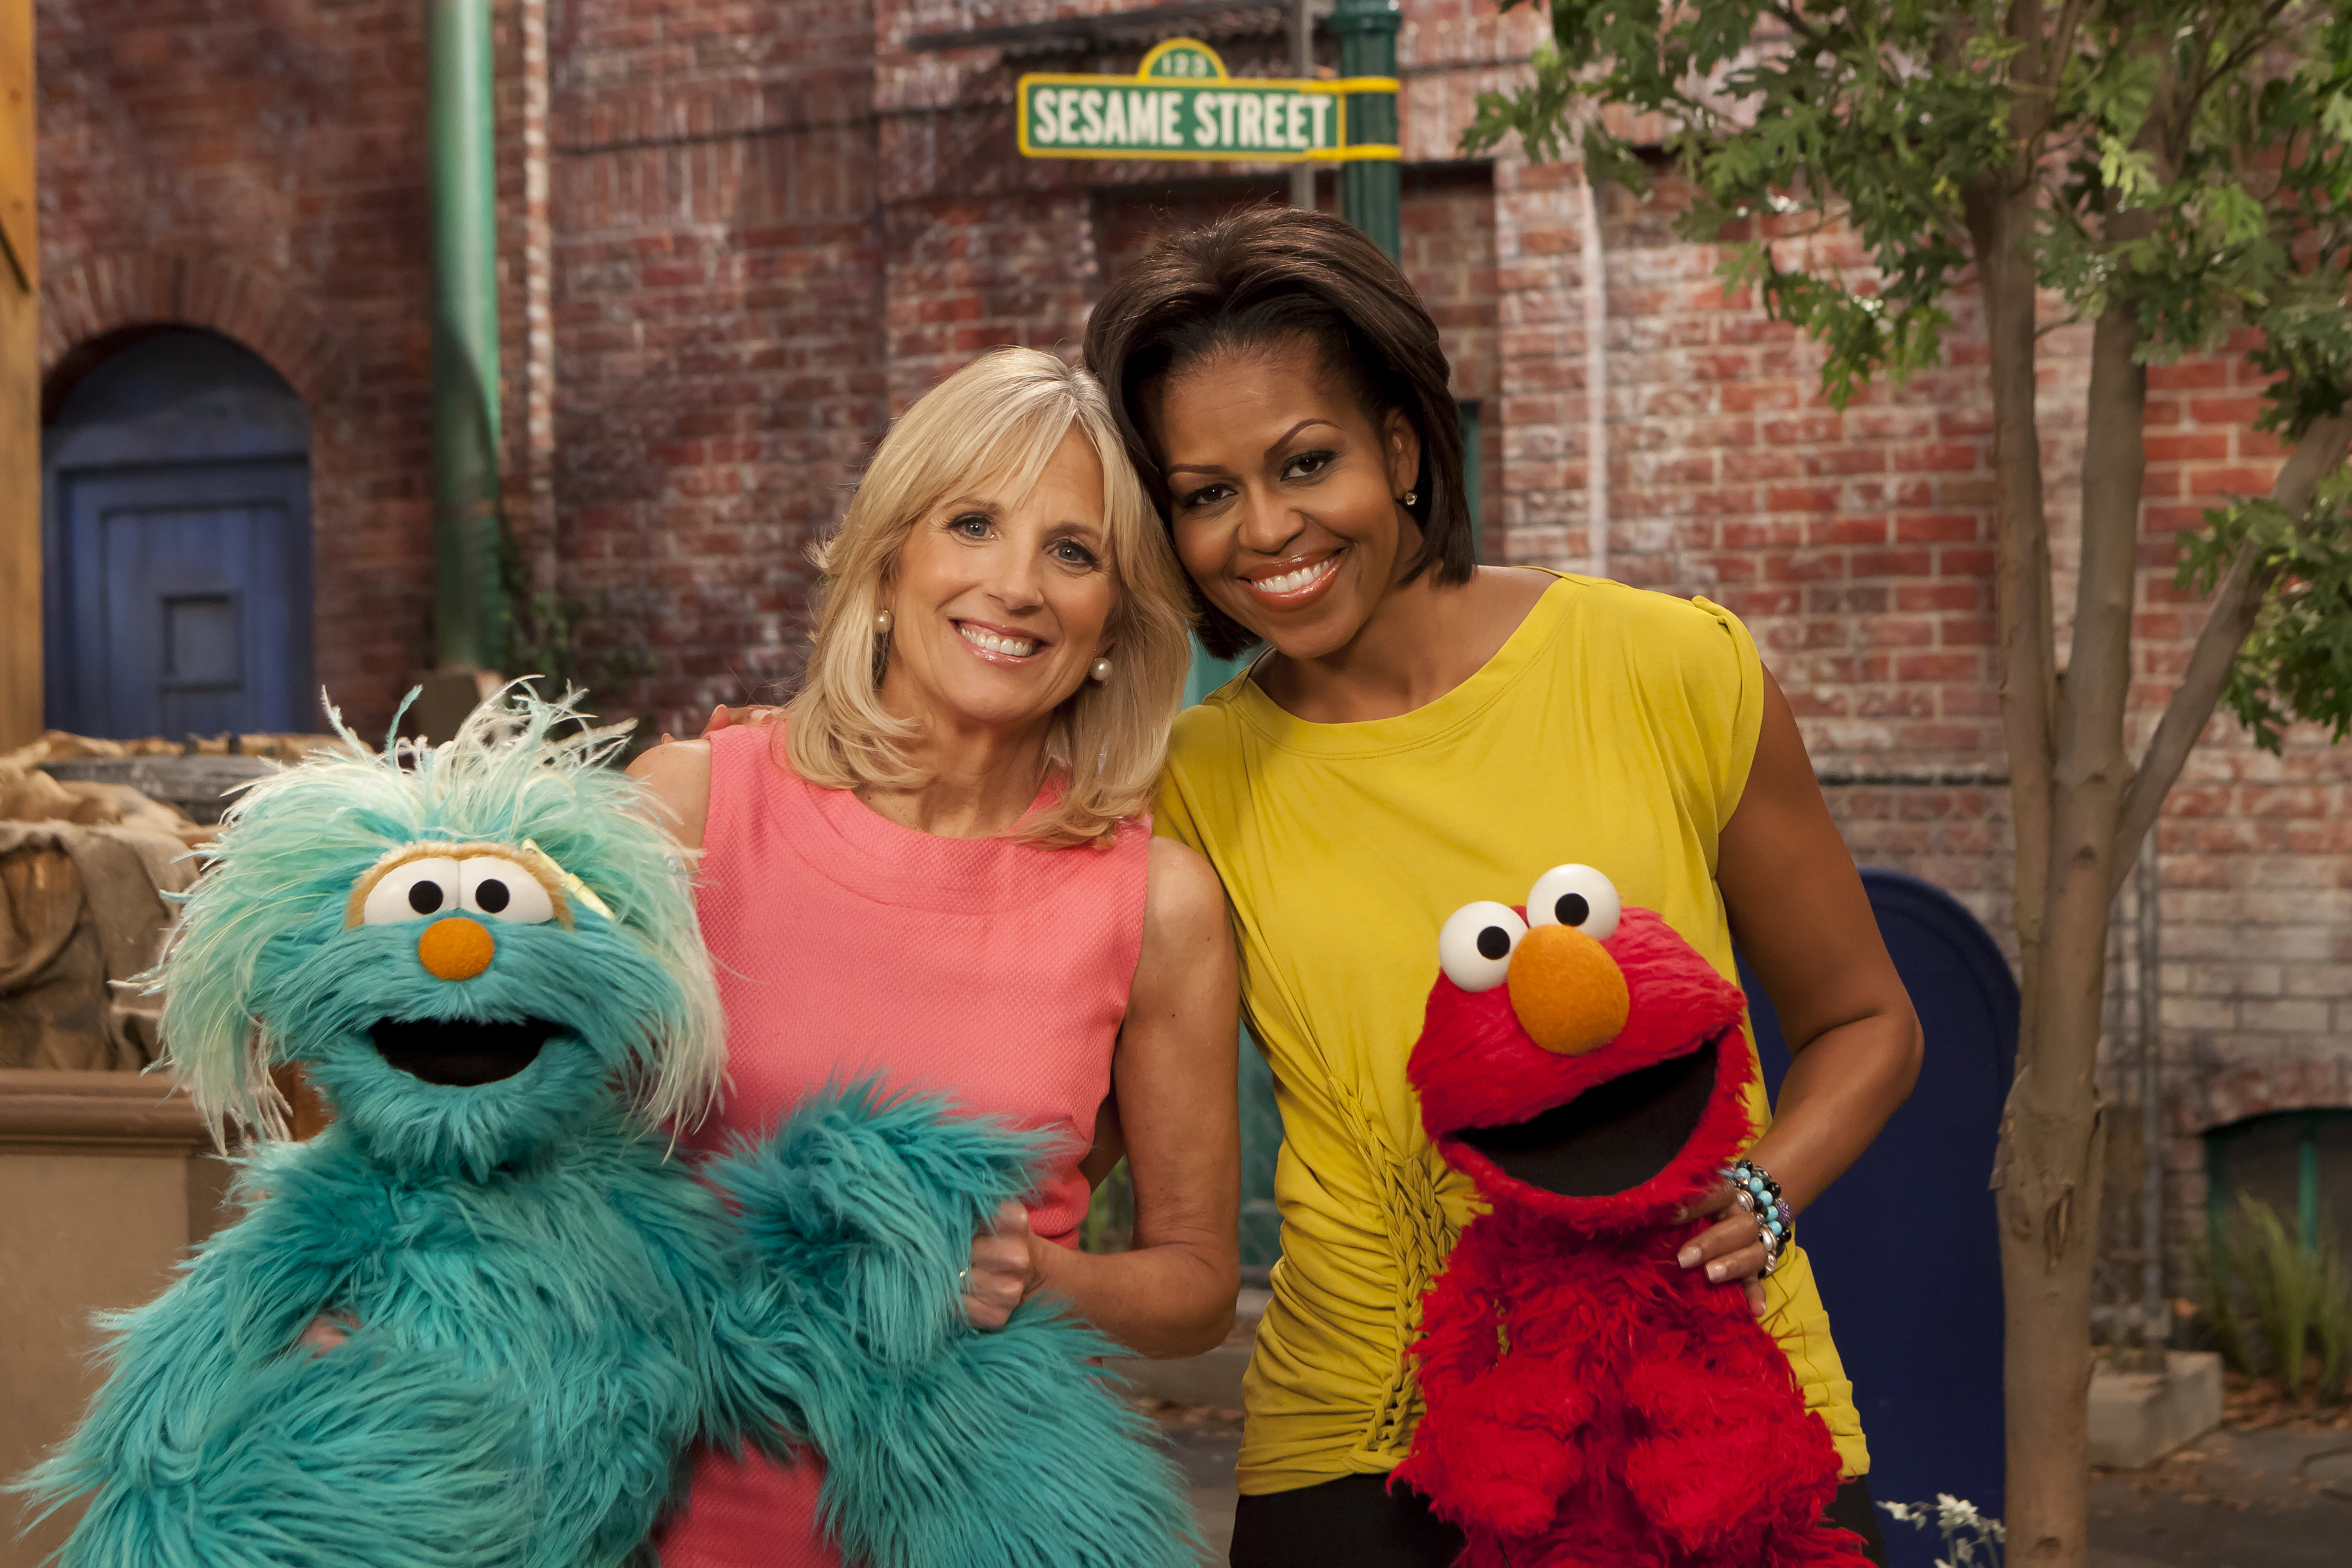 First Lady Michelle Obama and Dr. Jill Biden visited Sesame Street